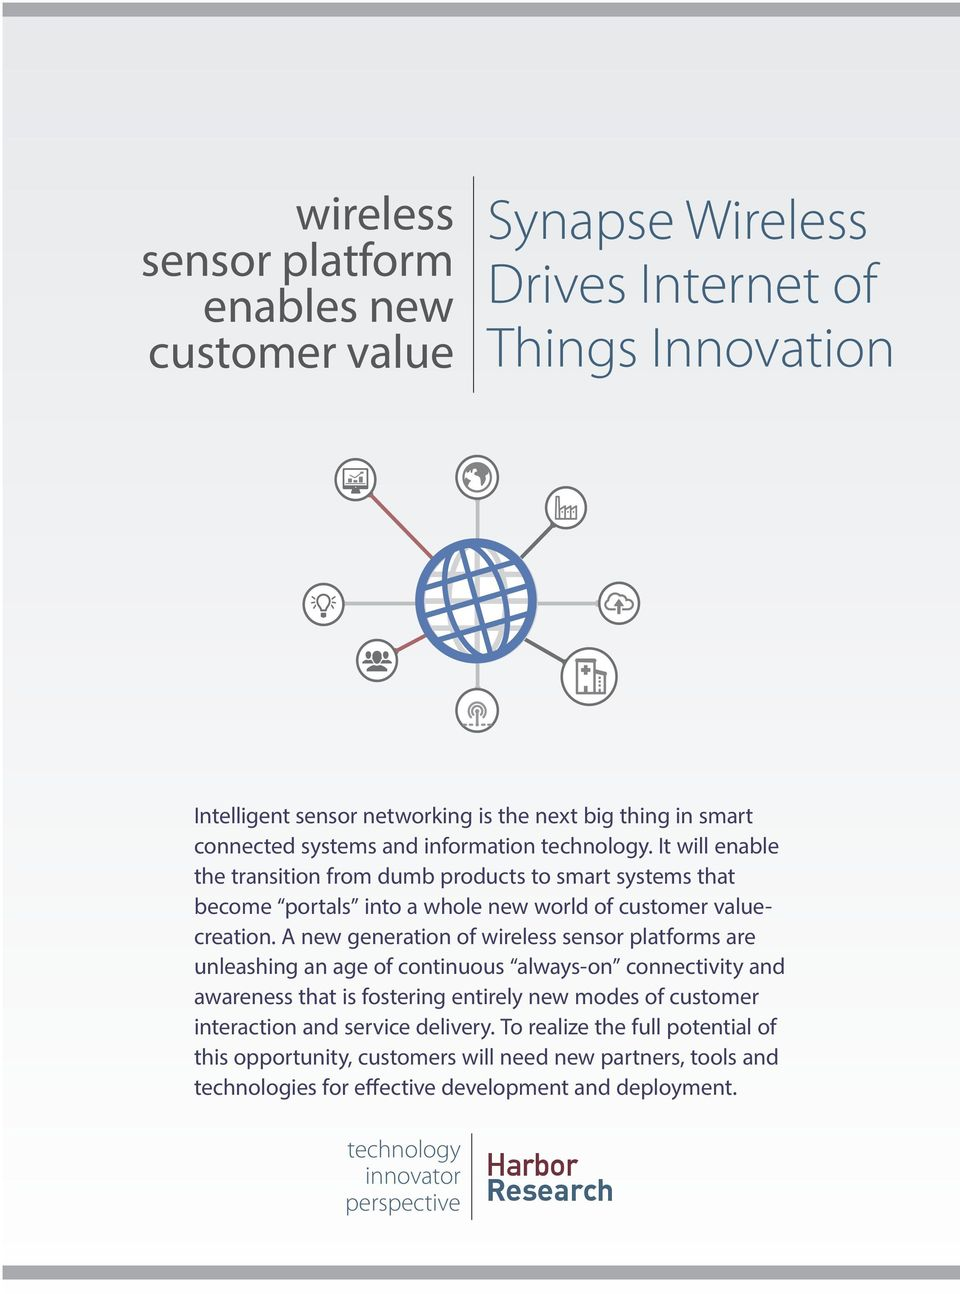 A new generation of wireless sensor platforms are unleashing an age of continuous always-on connectivity and awareness that is fostering entirely new modes of customer interaction